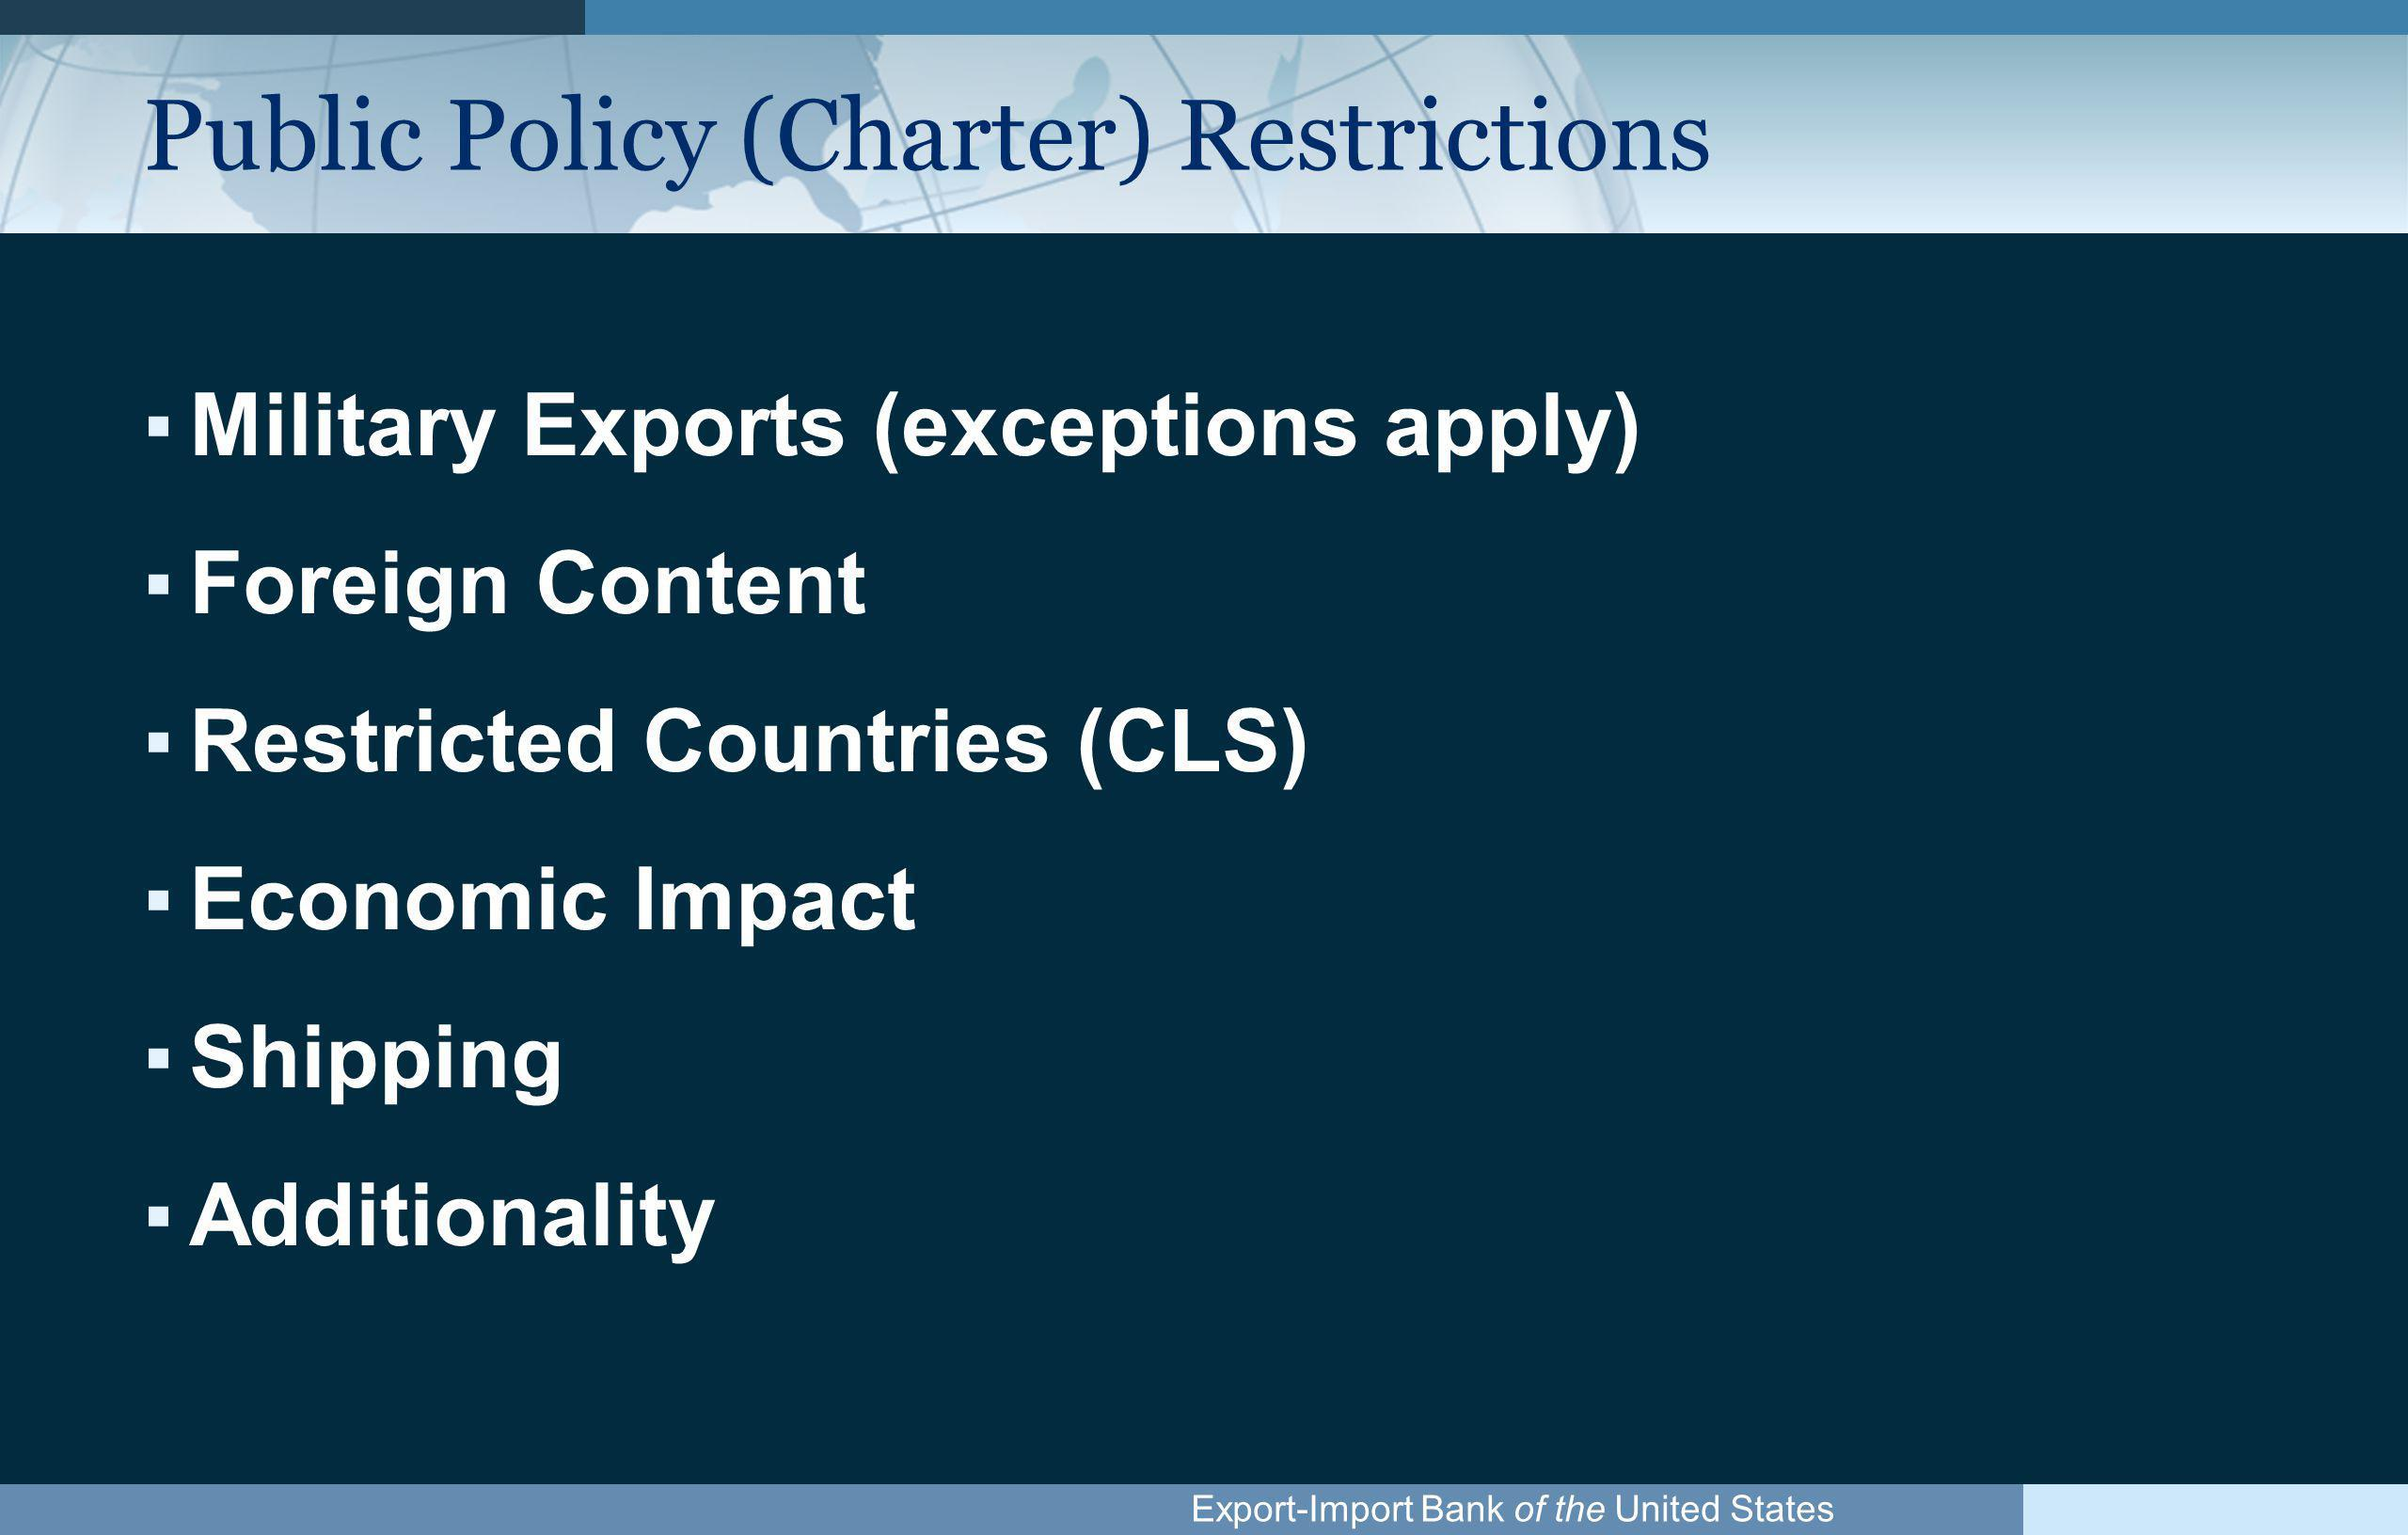 Export-Import Bank of the United States Military Policy No Defense Articles or Services, or Military buyers Three Exceptions ▪Humanitarian purposes ▪Drug interdiction ▪Dual use items